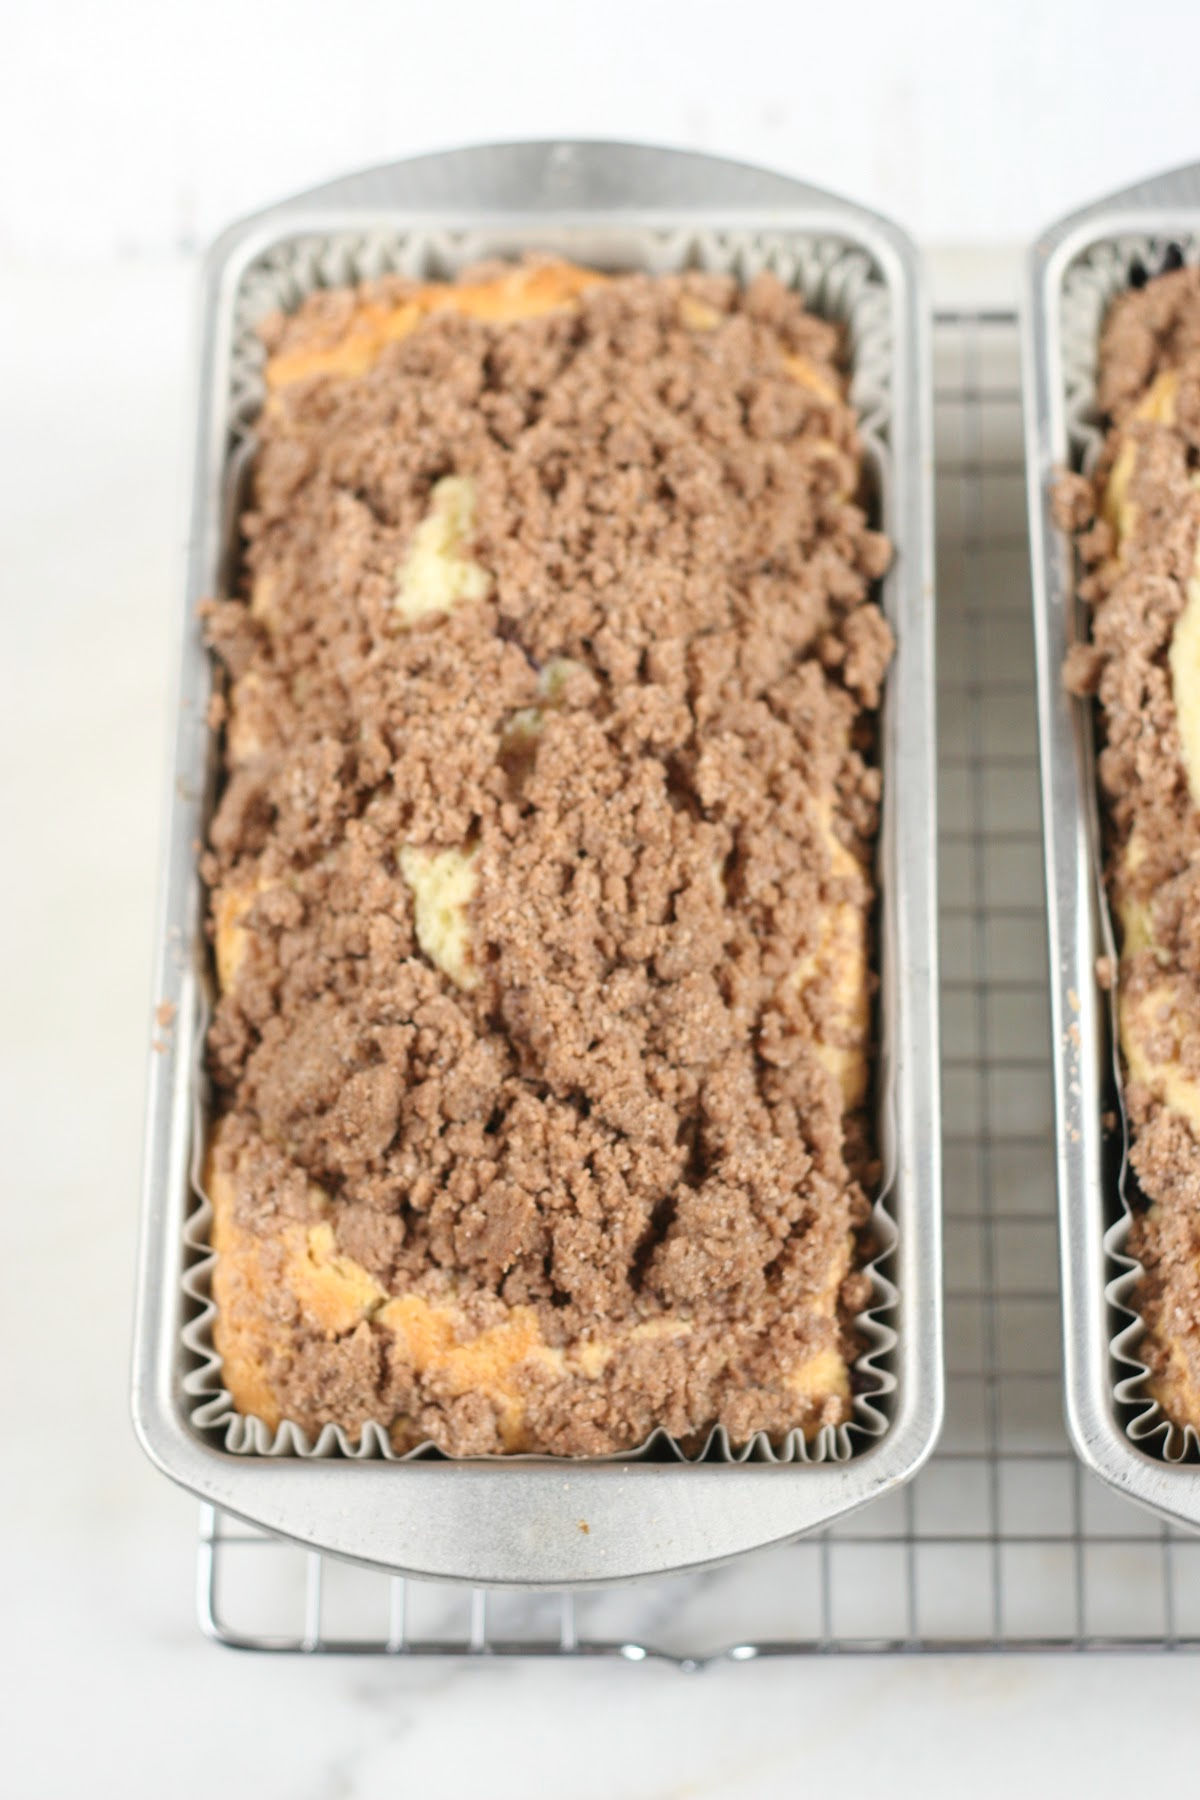 Coffee cake in loaf pans with crumb topping on metal baking rack.